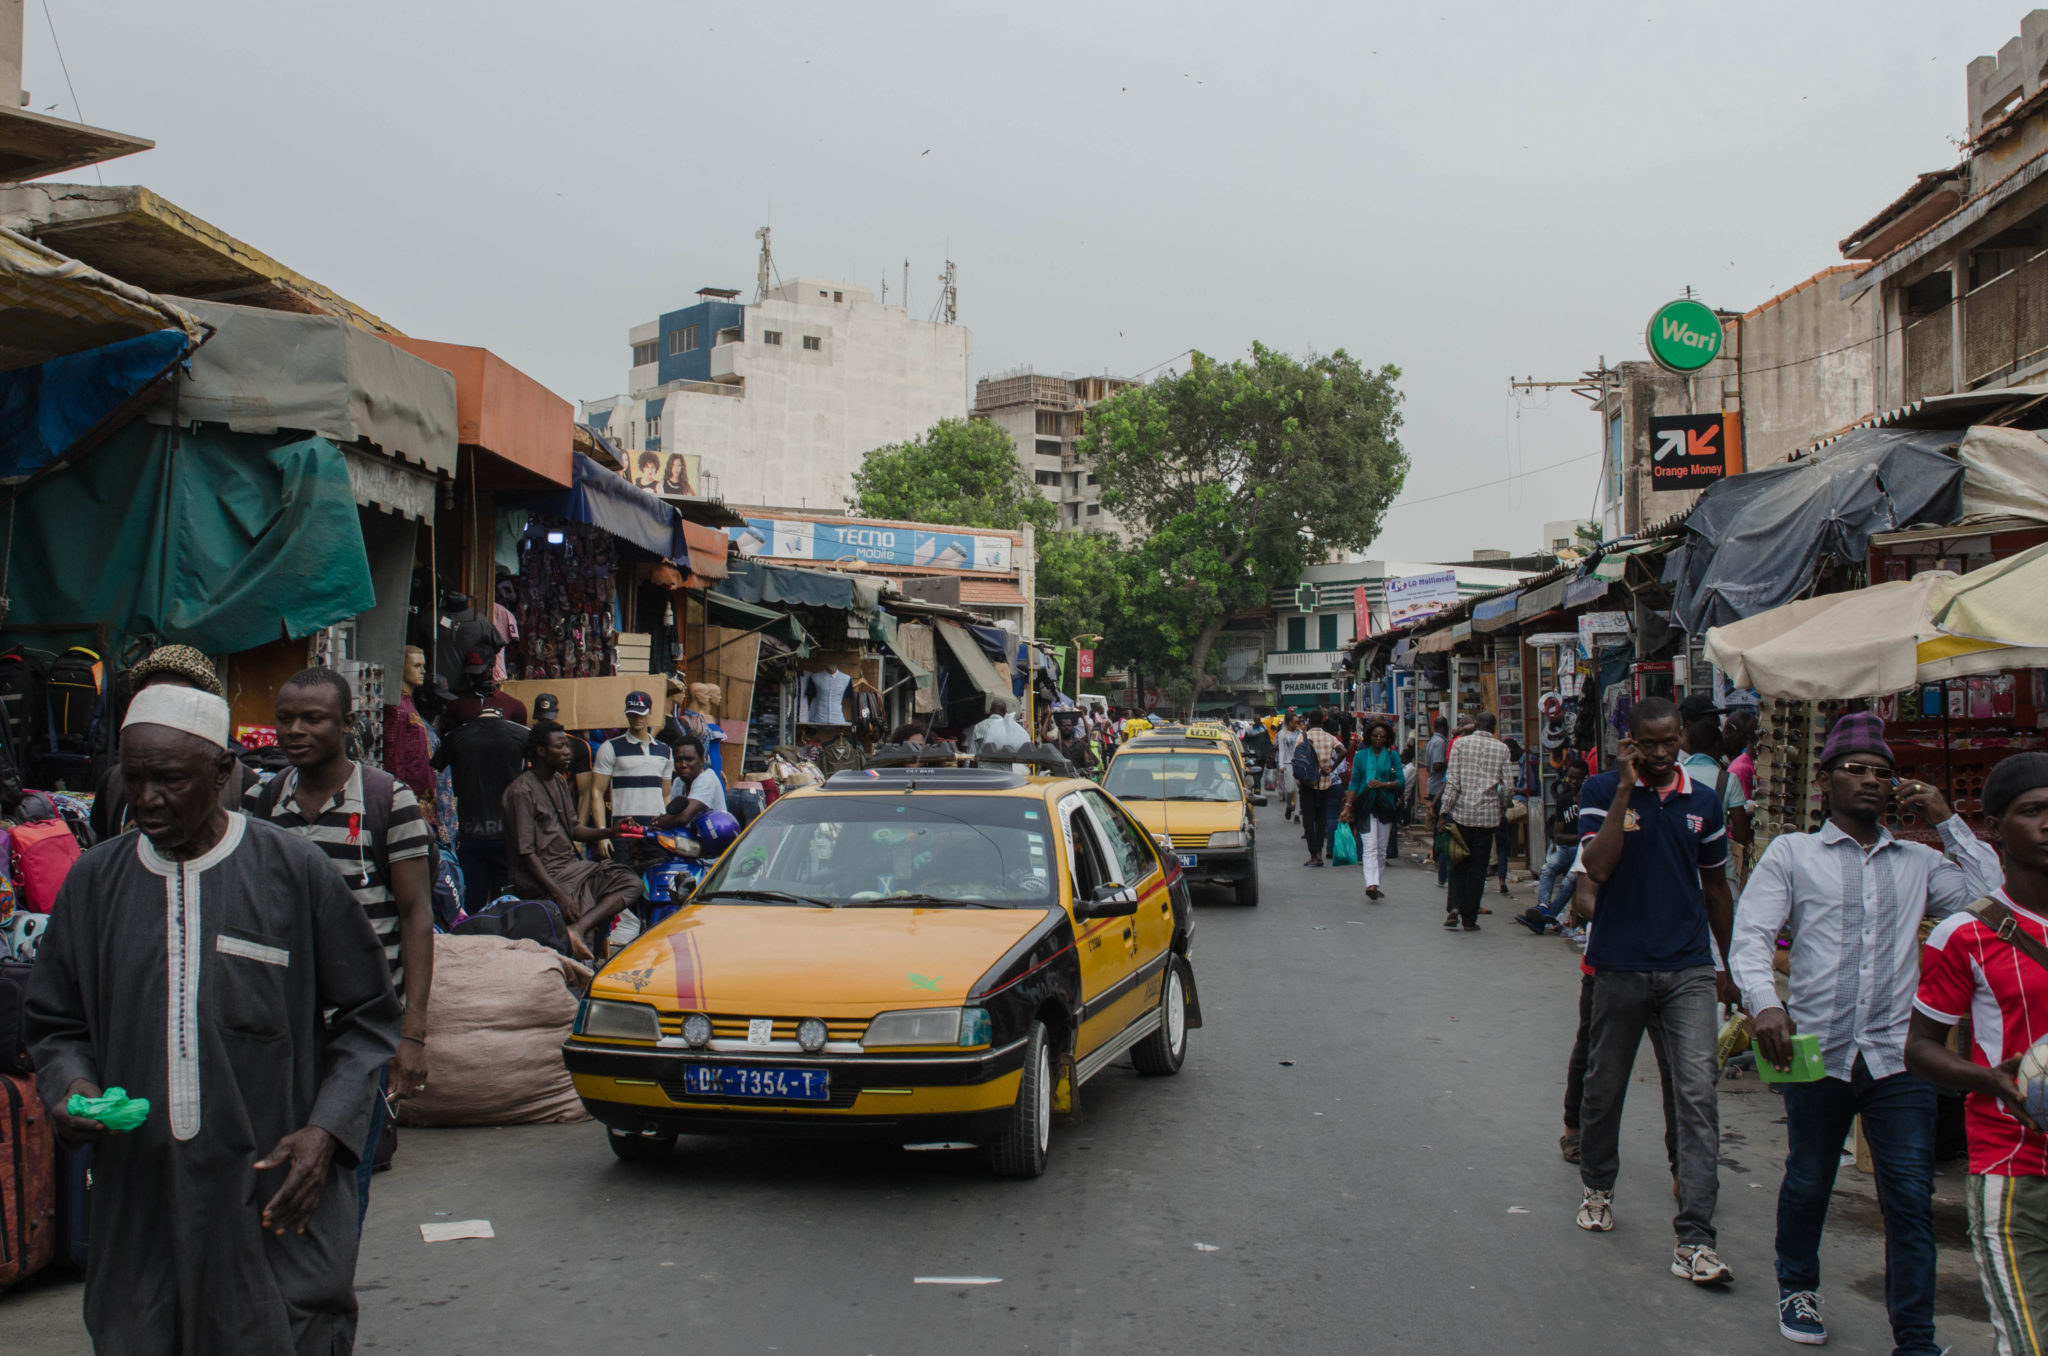 Senegal Travel Advice: Taxis in Senegal are black and yellow.